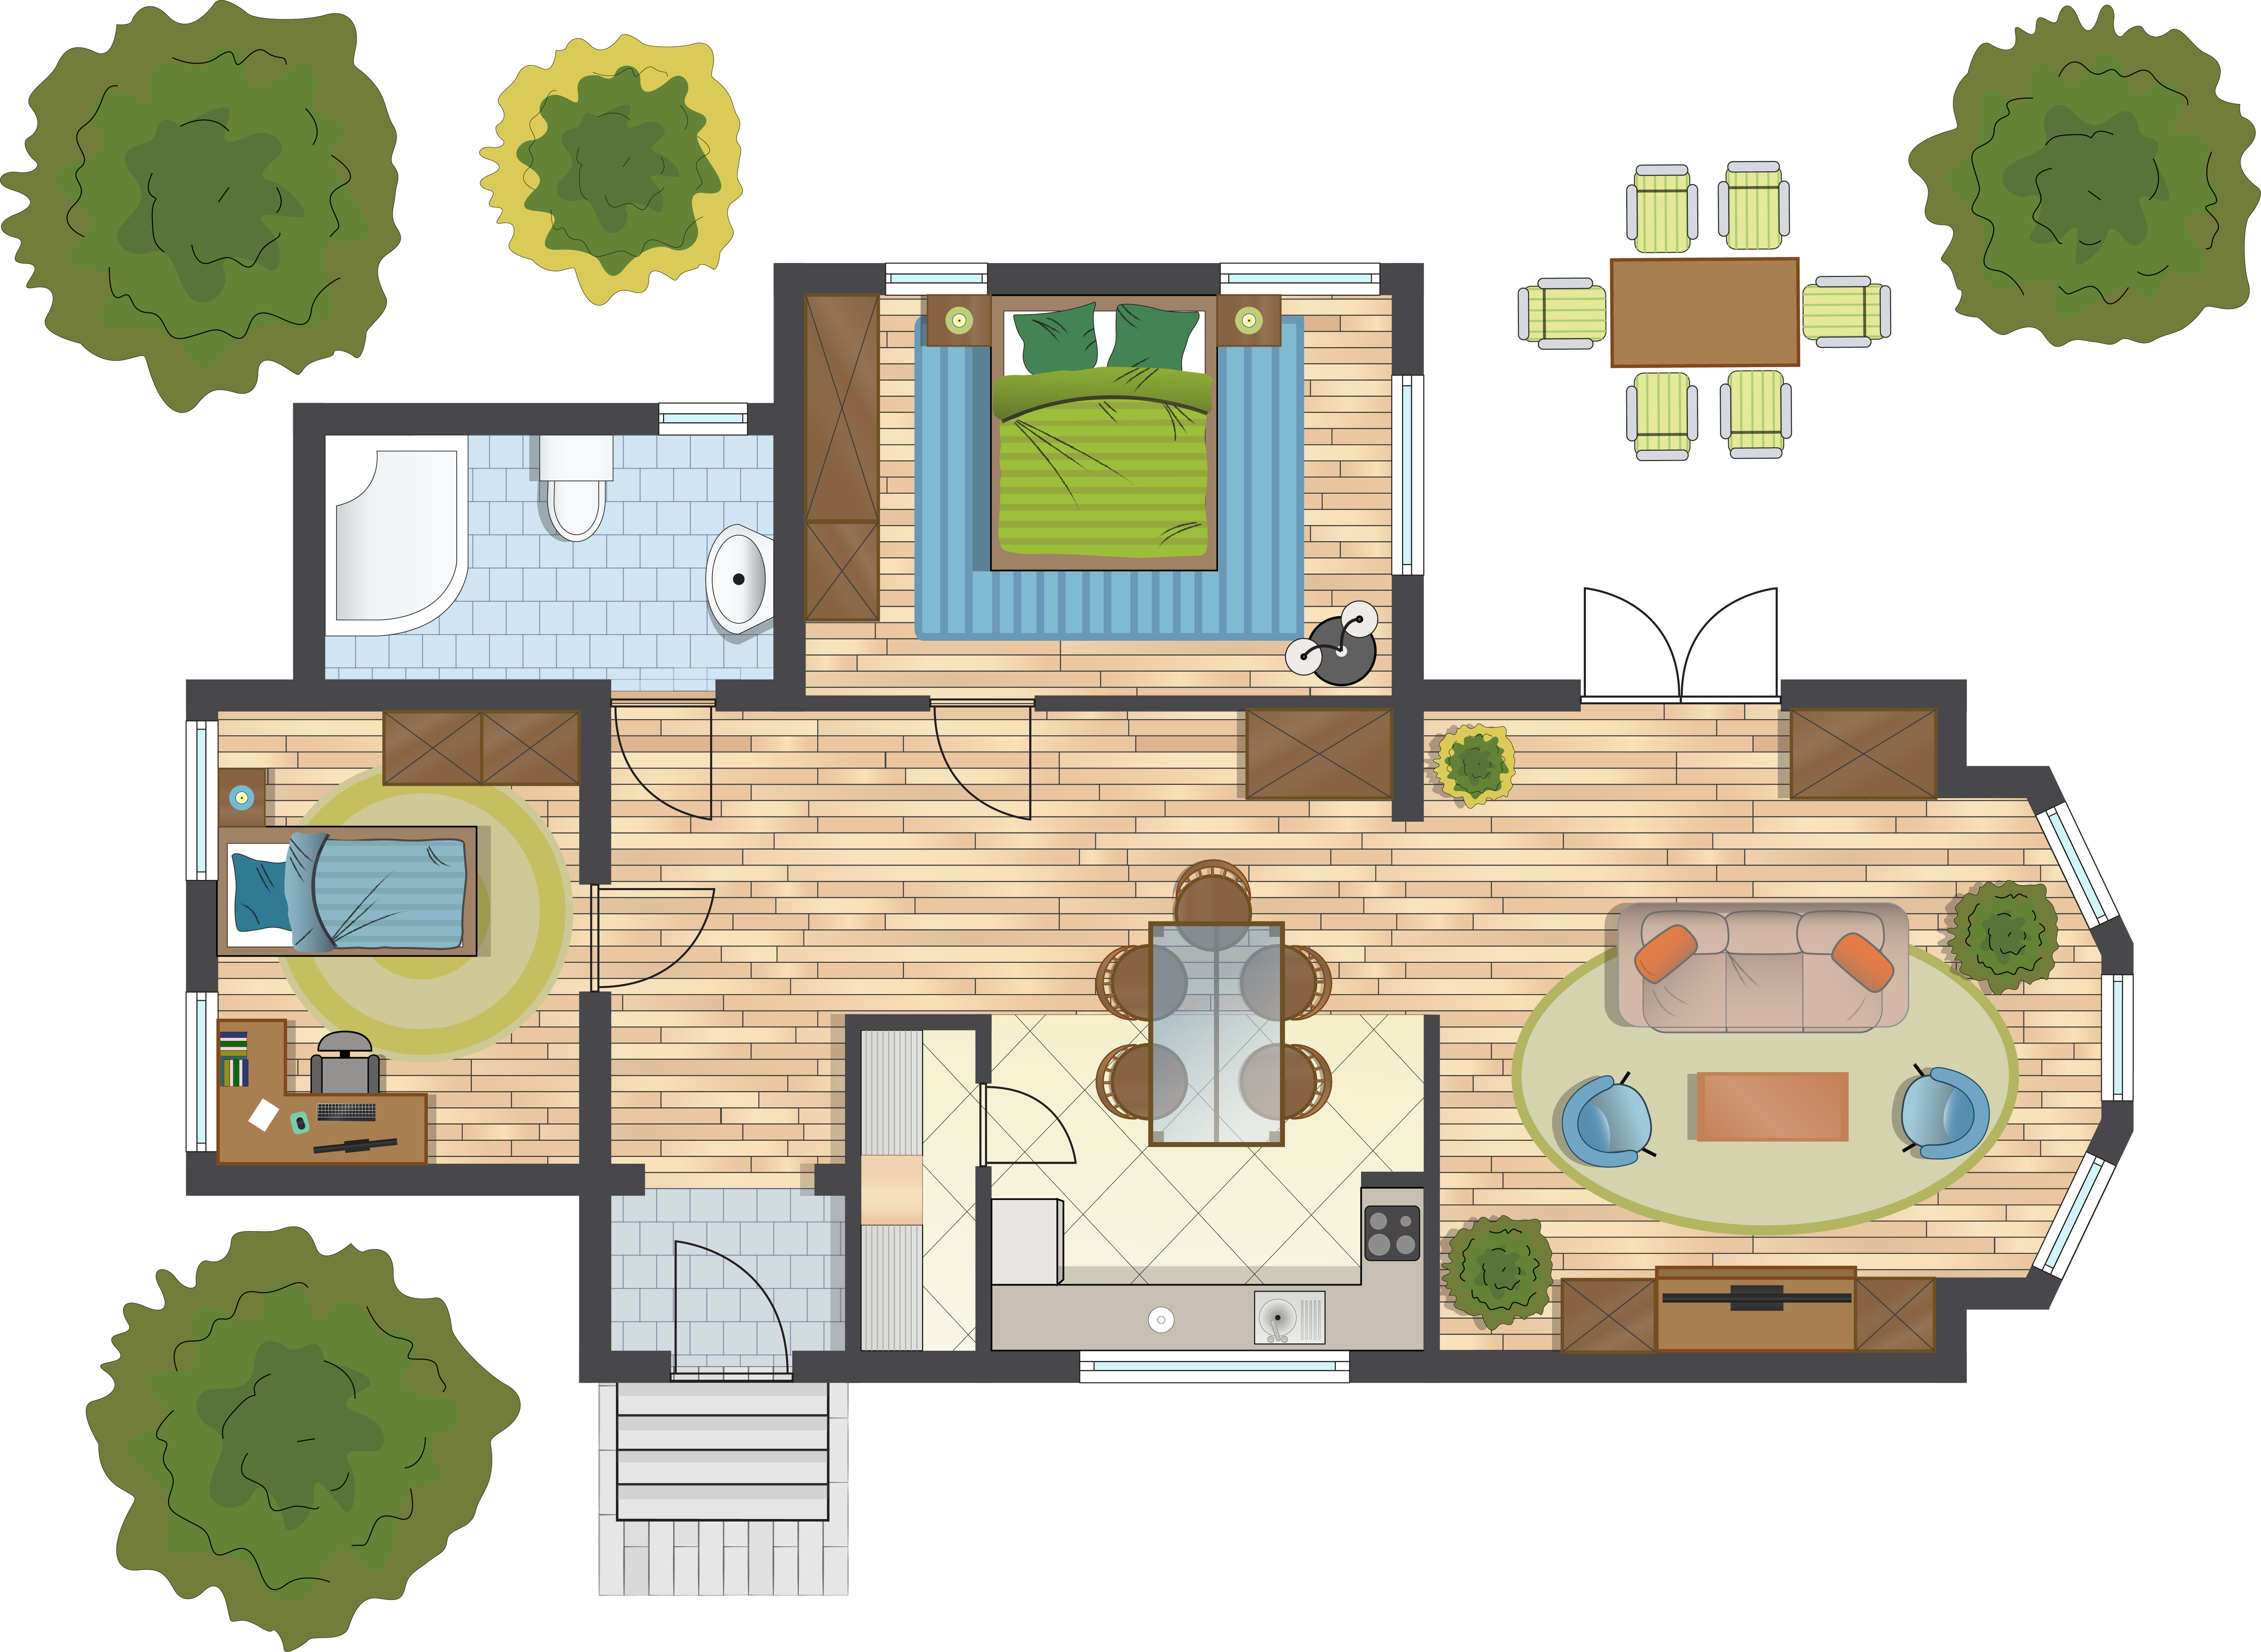 Colorful floor plan of a house.